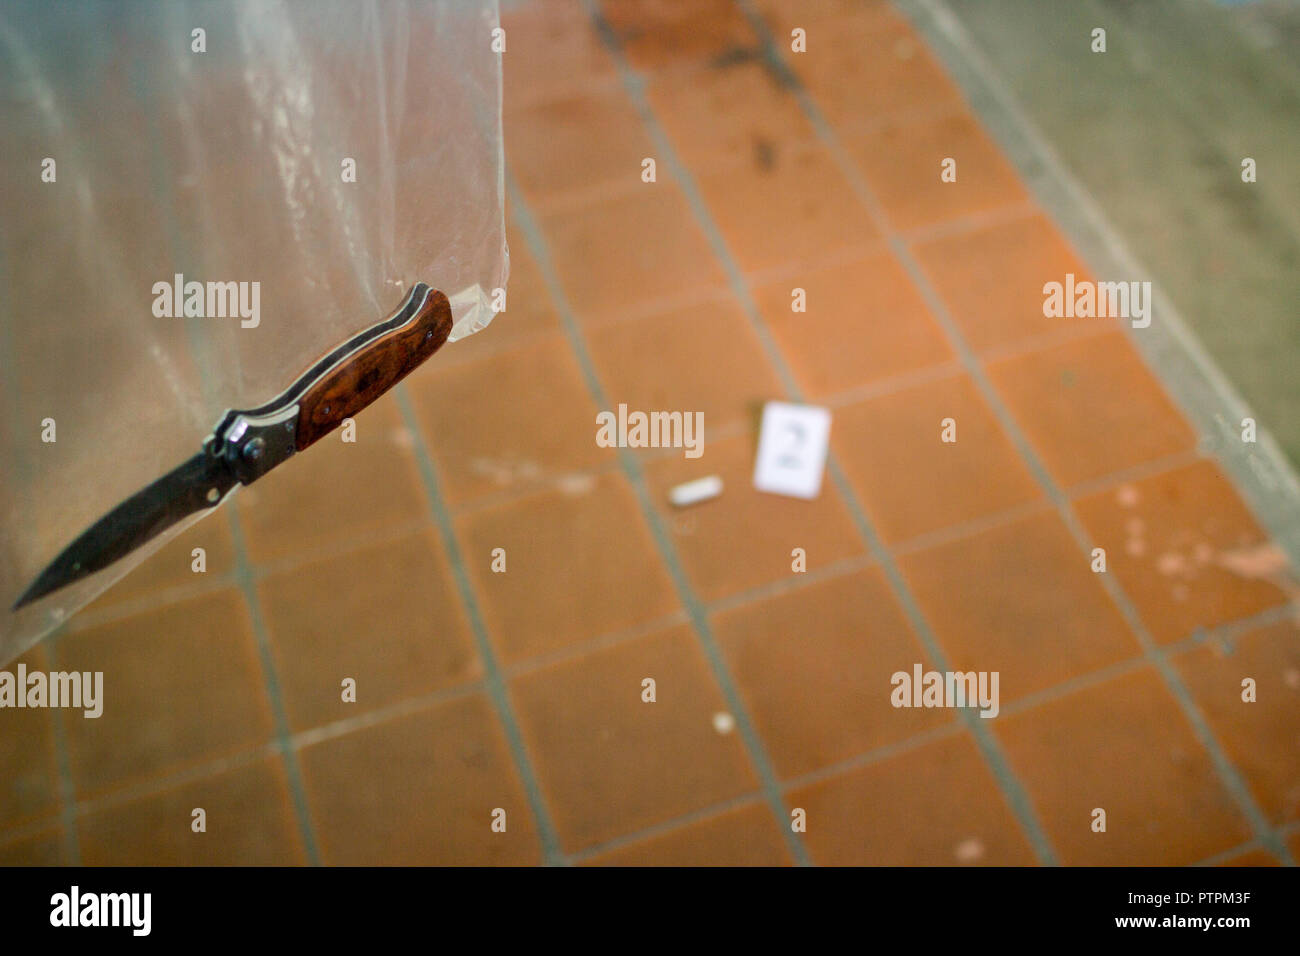 Stubby stub and folding knife in the forensic package, investigation, murder in the entrance - Stock Image